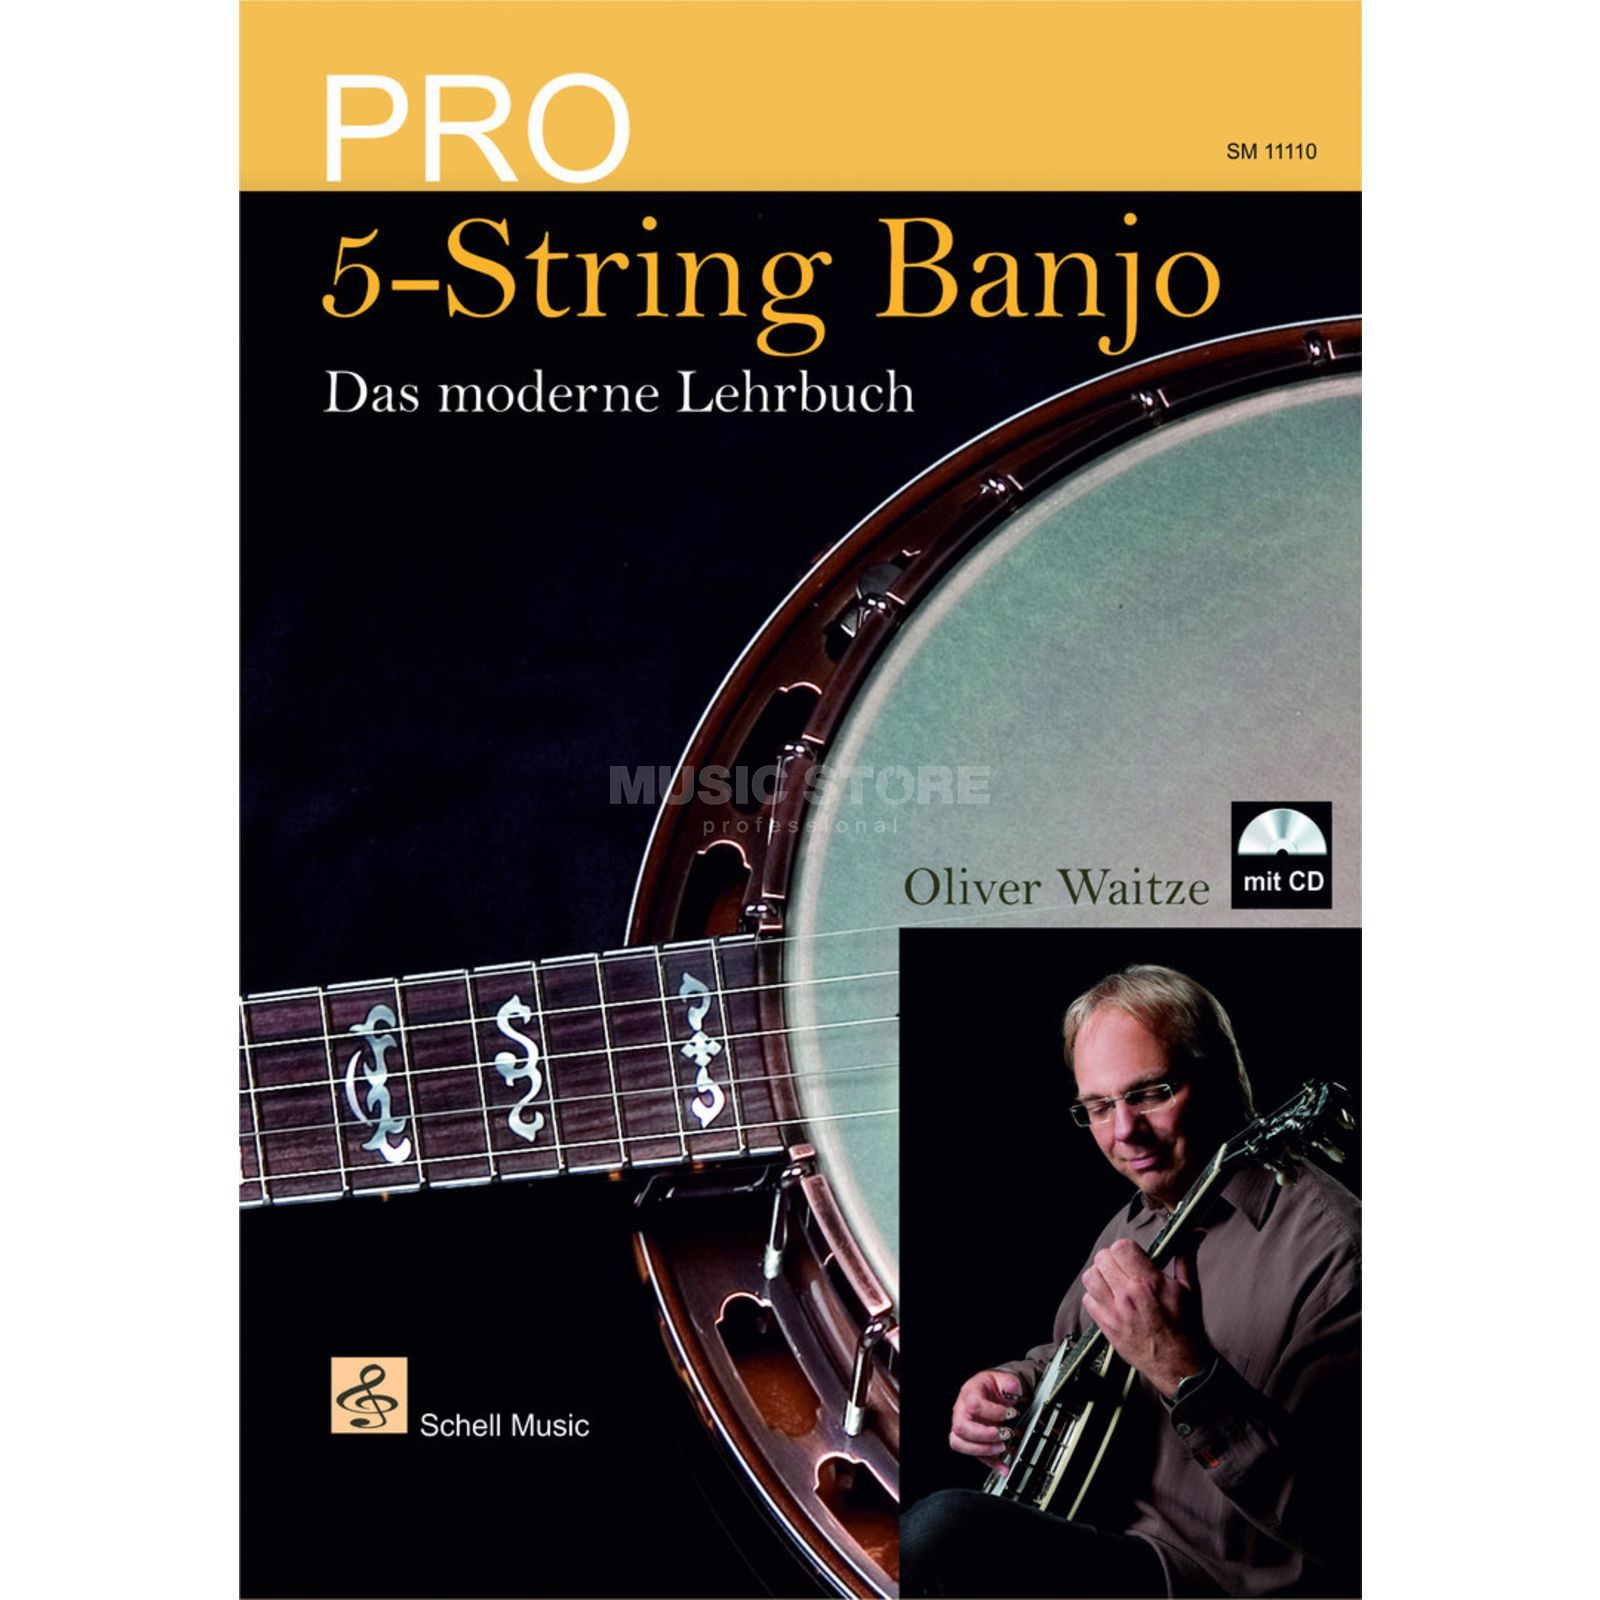 Schell Music Pro 5-String Banjo - Das moderne Lehrbuch Product Image